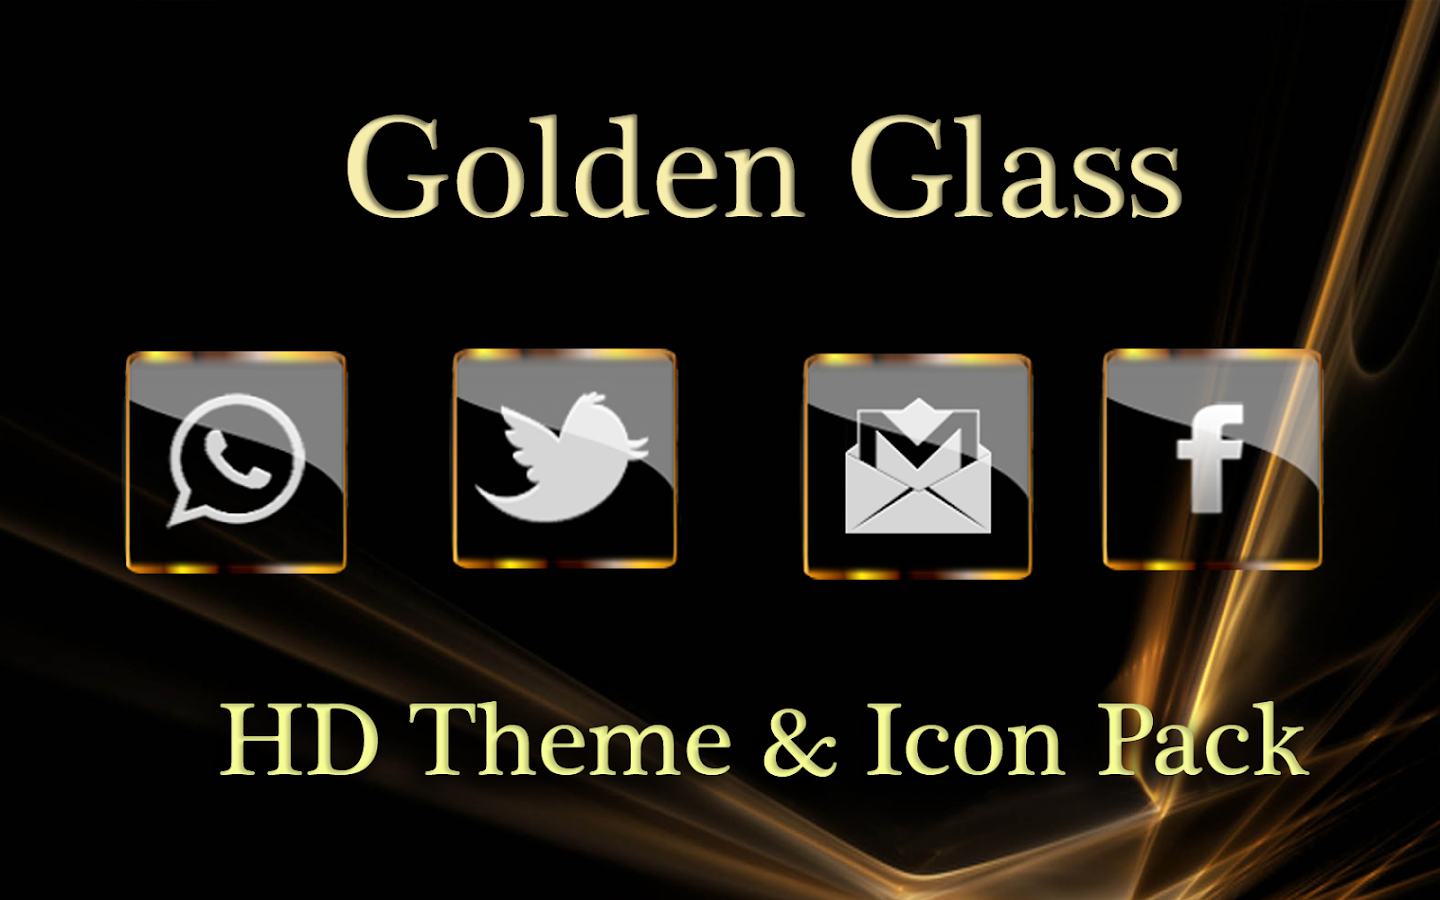 Golden Glass Nova Icon Pack Screenshot 6